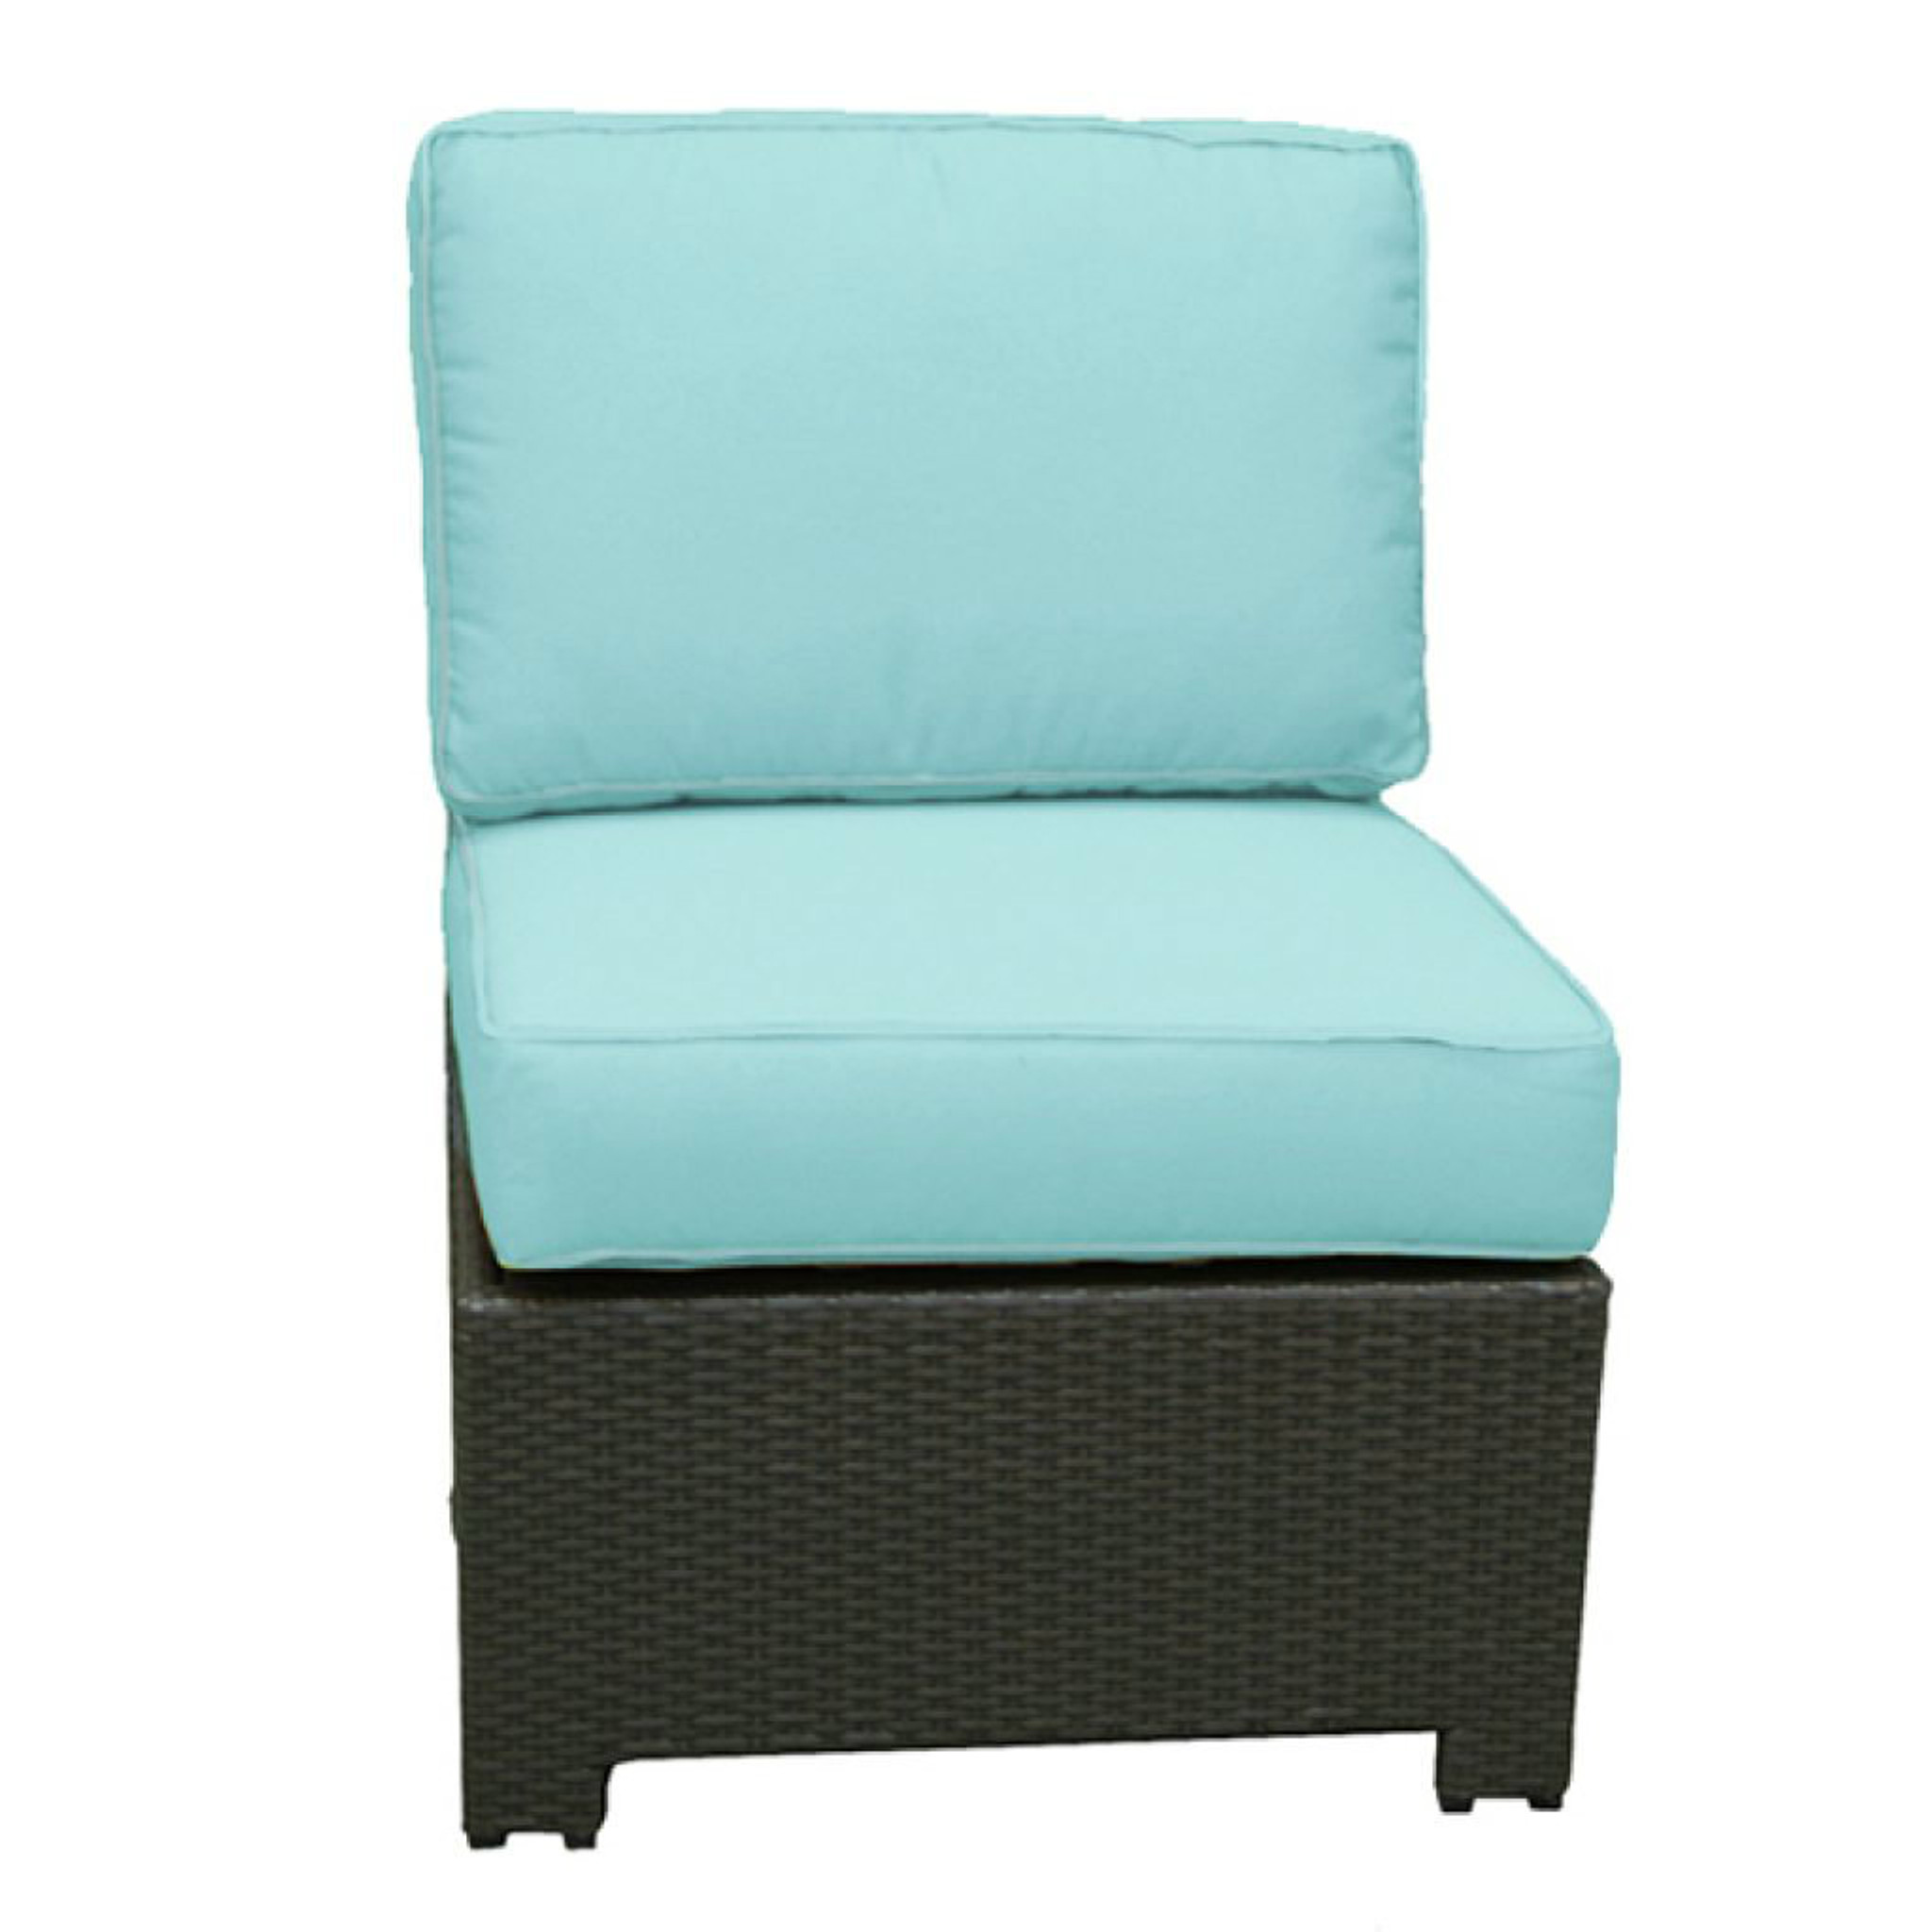 Cabo Patio Furniture.Cabo Sectional Middle Chair By Northcape